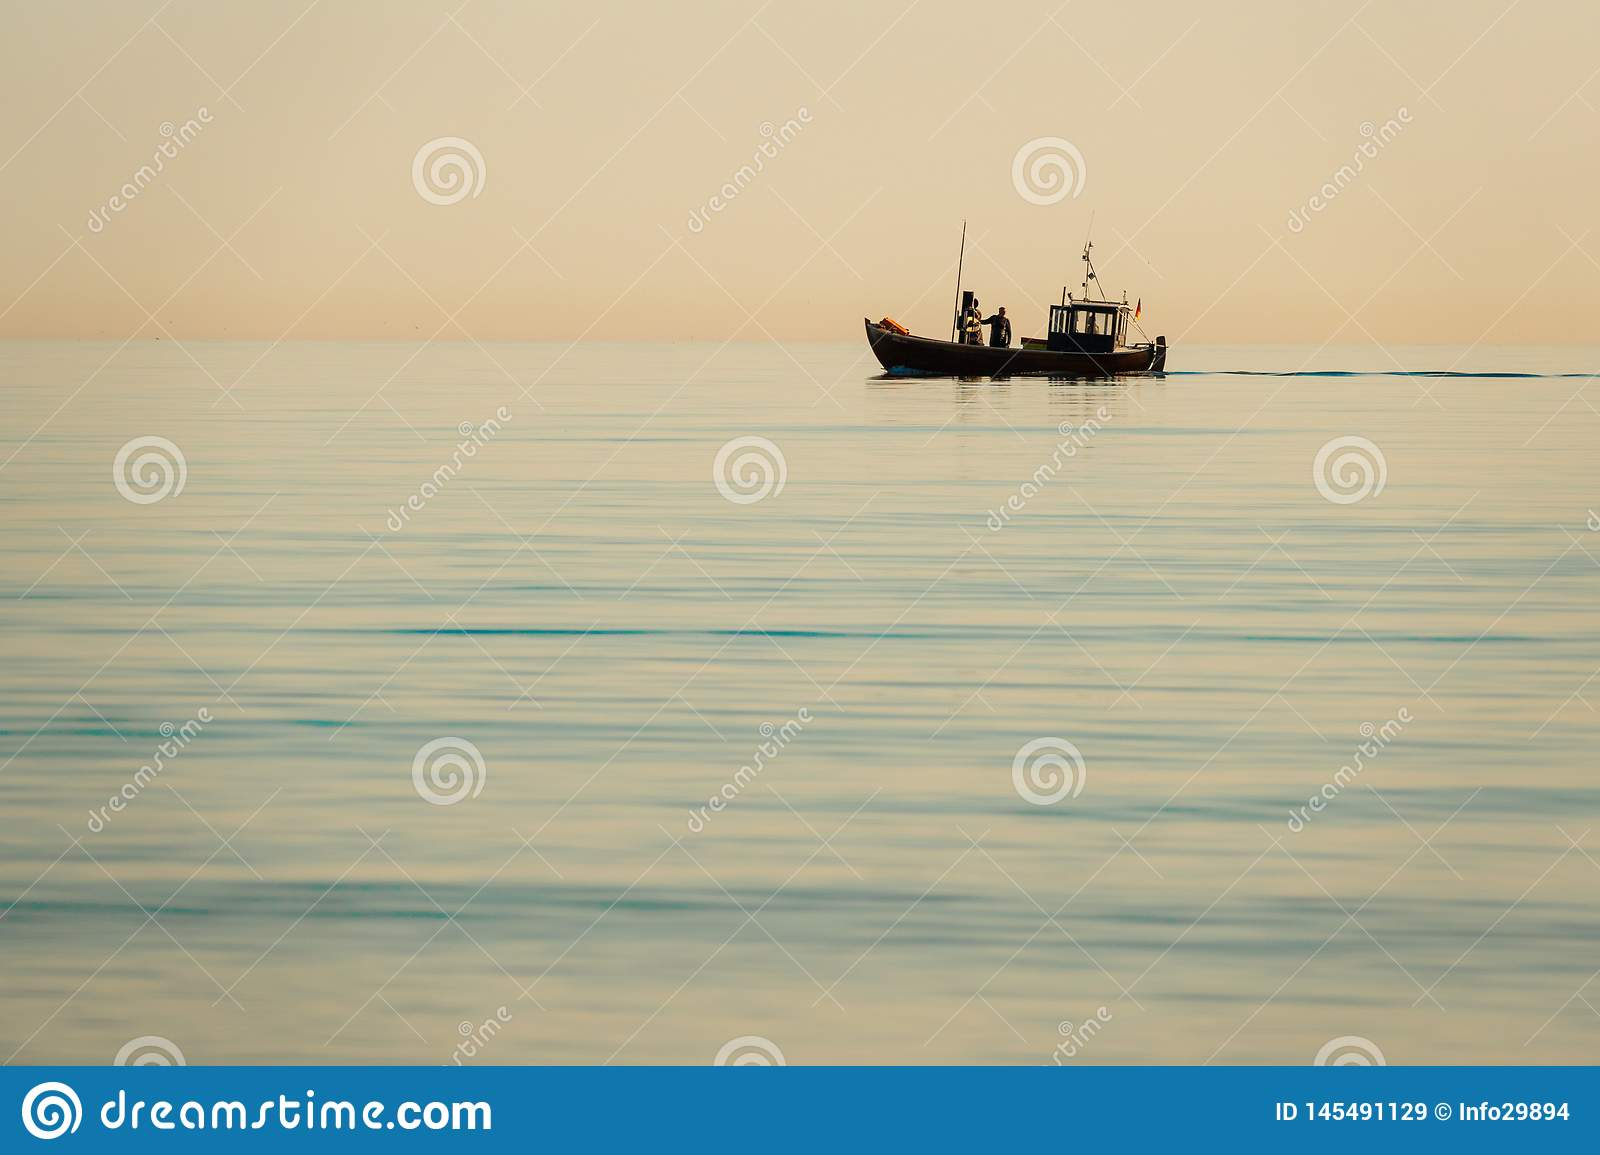 Fishing boat goes out to sea early in the morning when the sea is calm